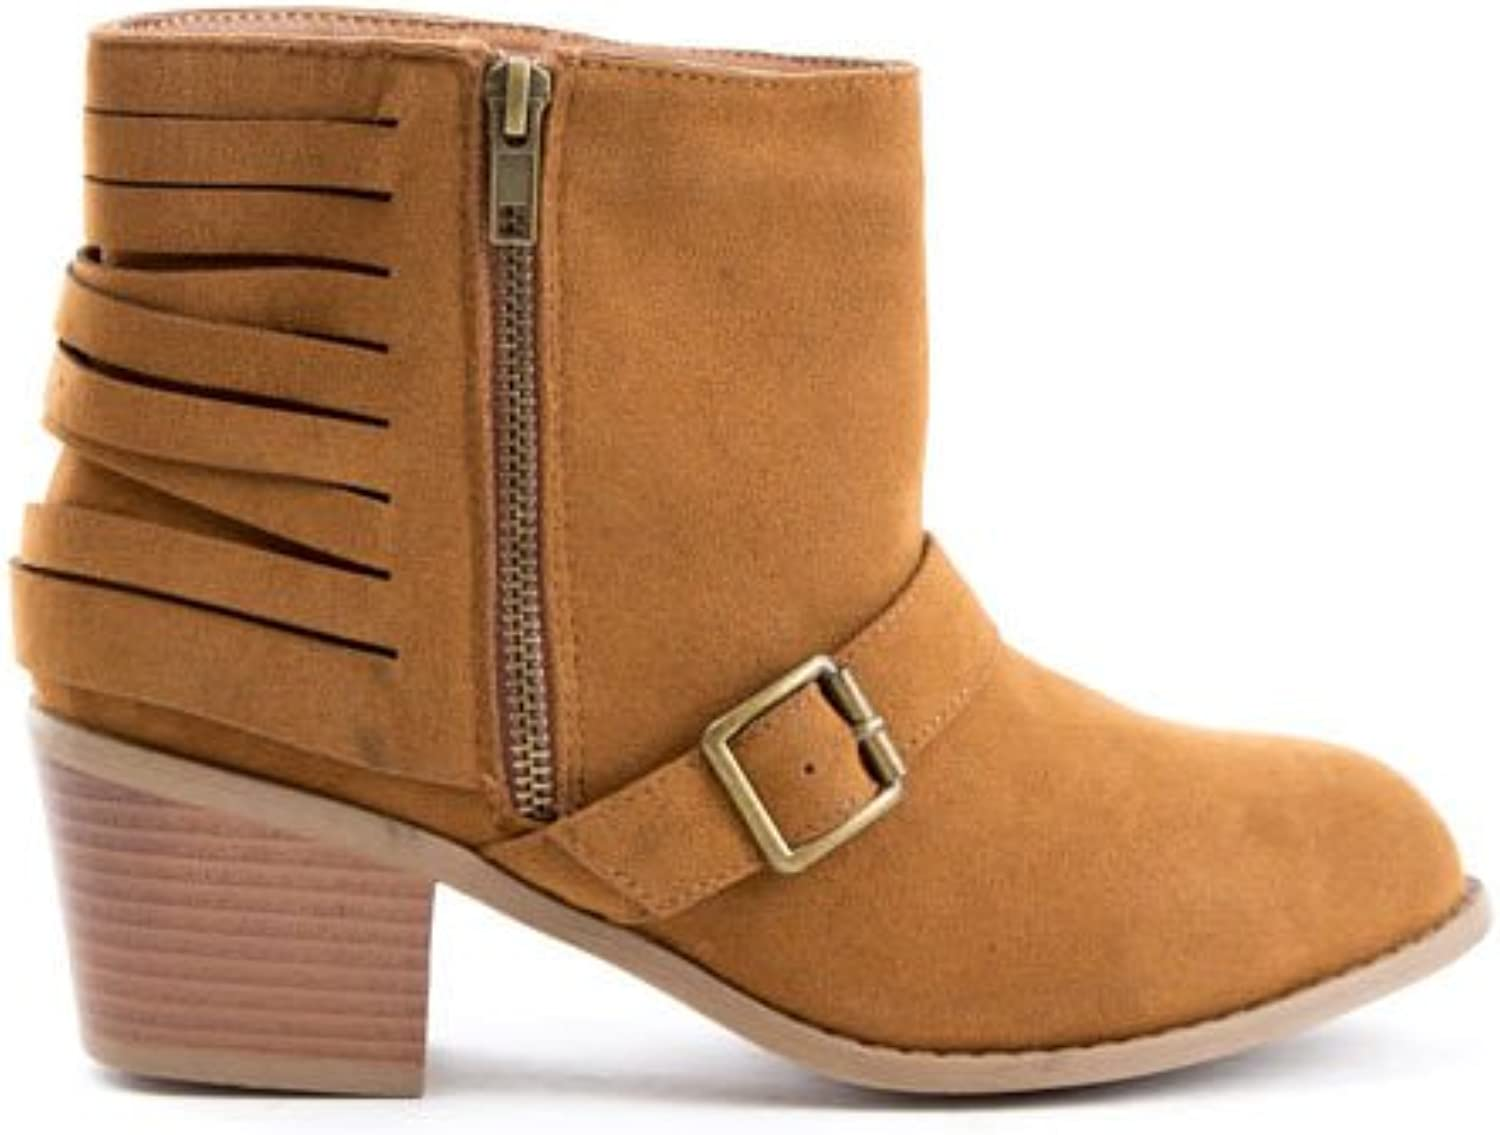 Soho shoes Women's Suede Buckle Cut Out Ankle Boots